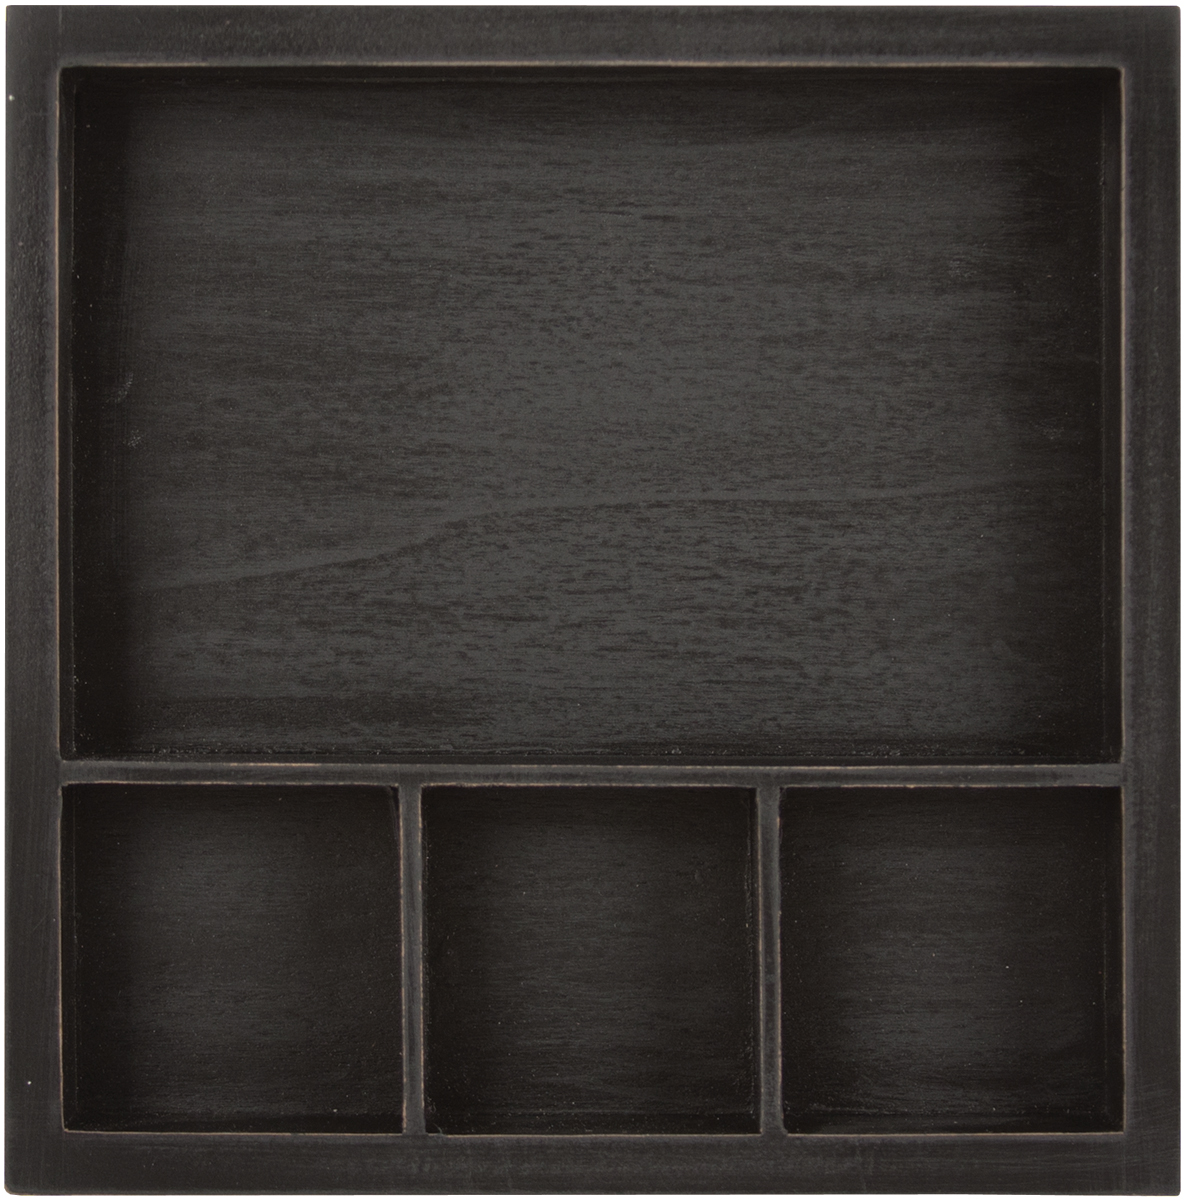 Solo Shadowbox Tray 6\u0022X6\u0022-Black, Holds (1) 6\u0022X4\u0022 & (3) 2\u0022X2\u0022 Photo